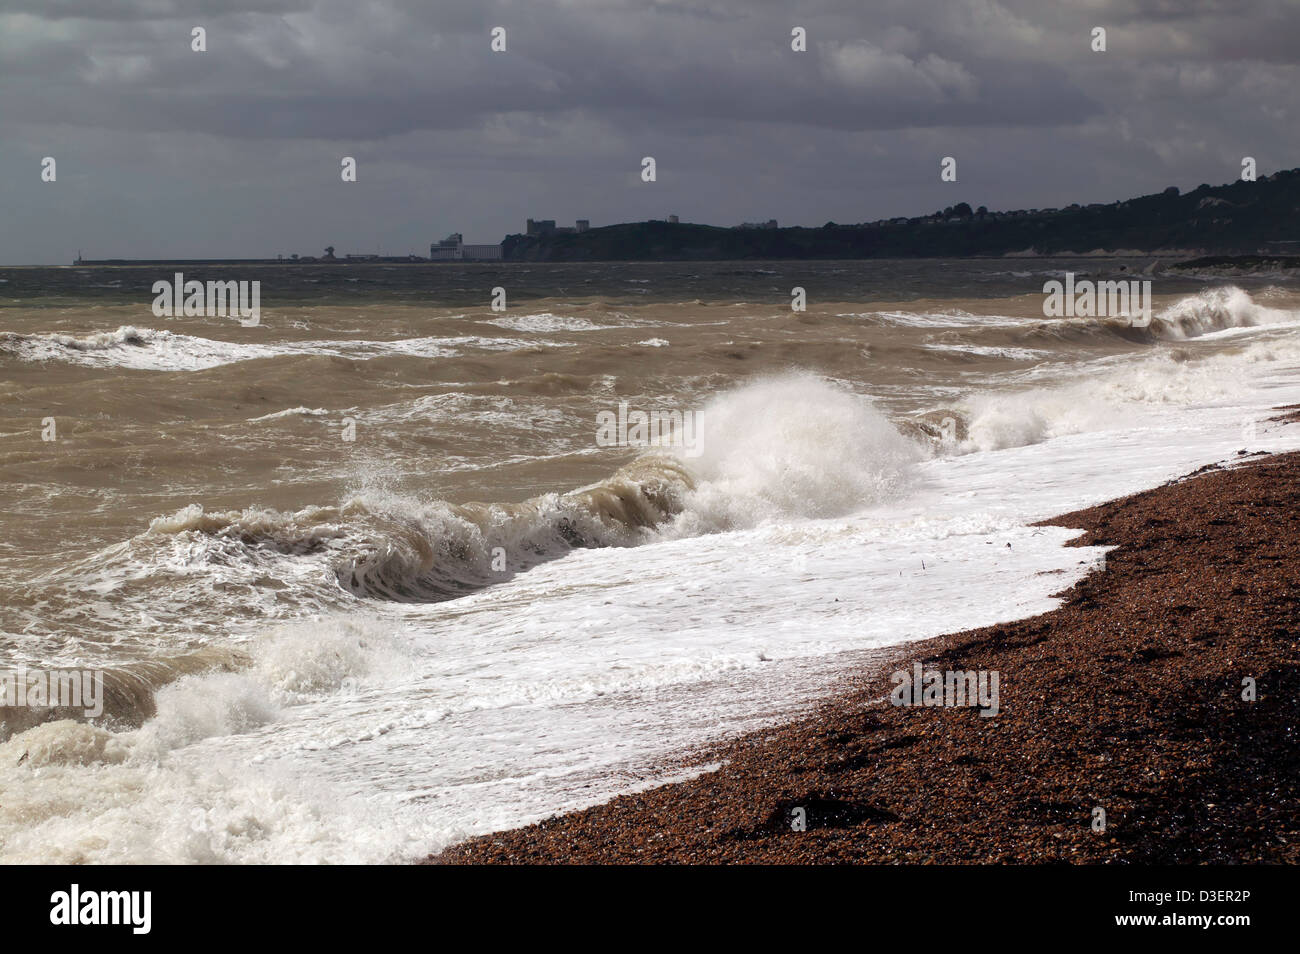 A Tempestuous Sea on a very windy day off Samphire Hoe,  looking out towards Folkestone, Kent. - Stock Image